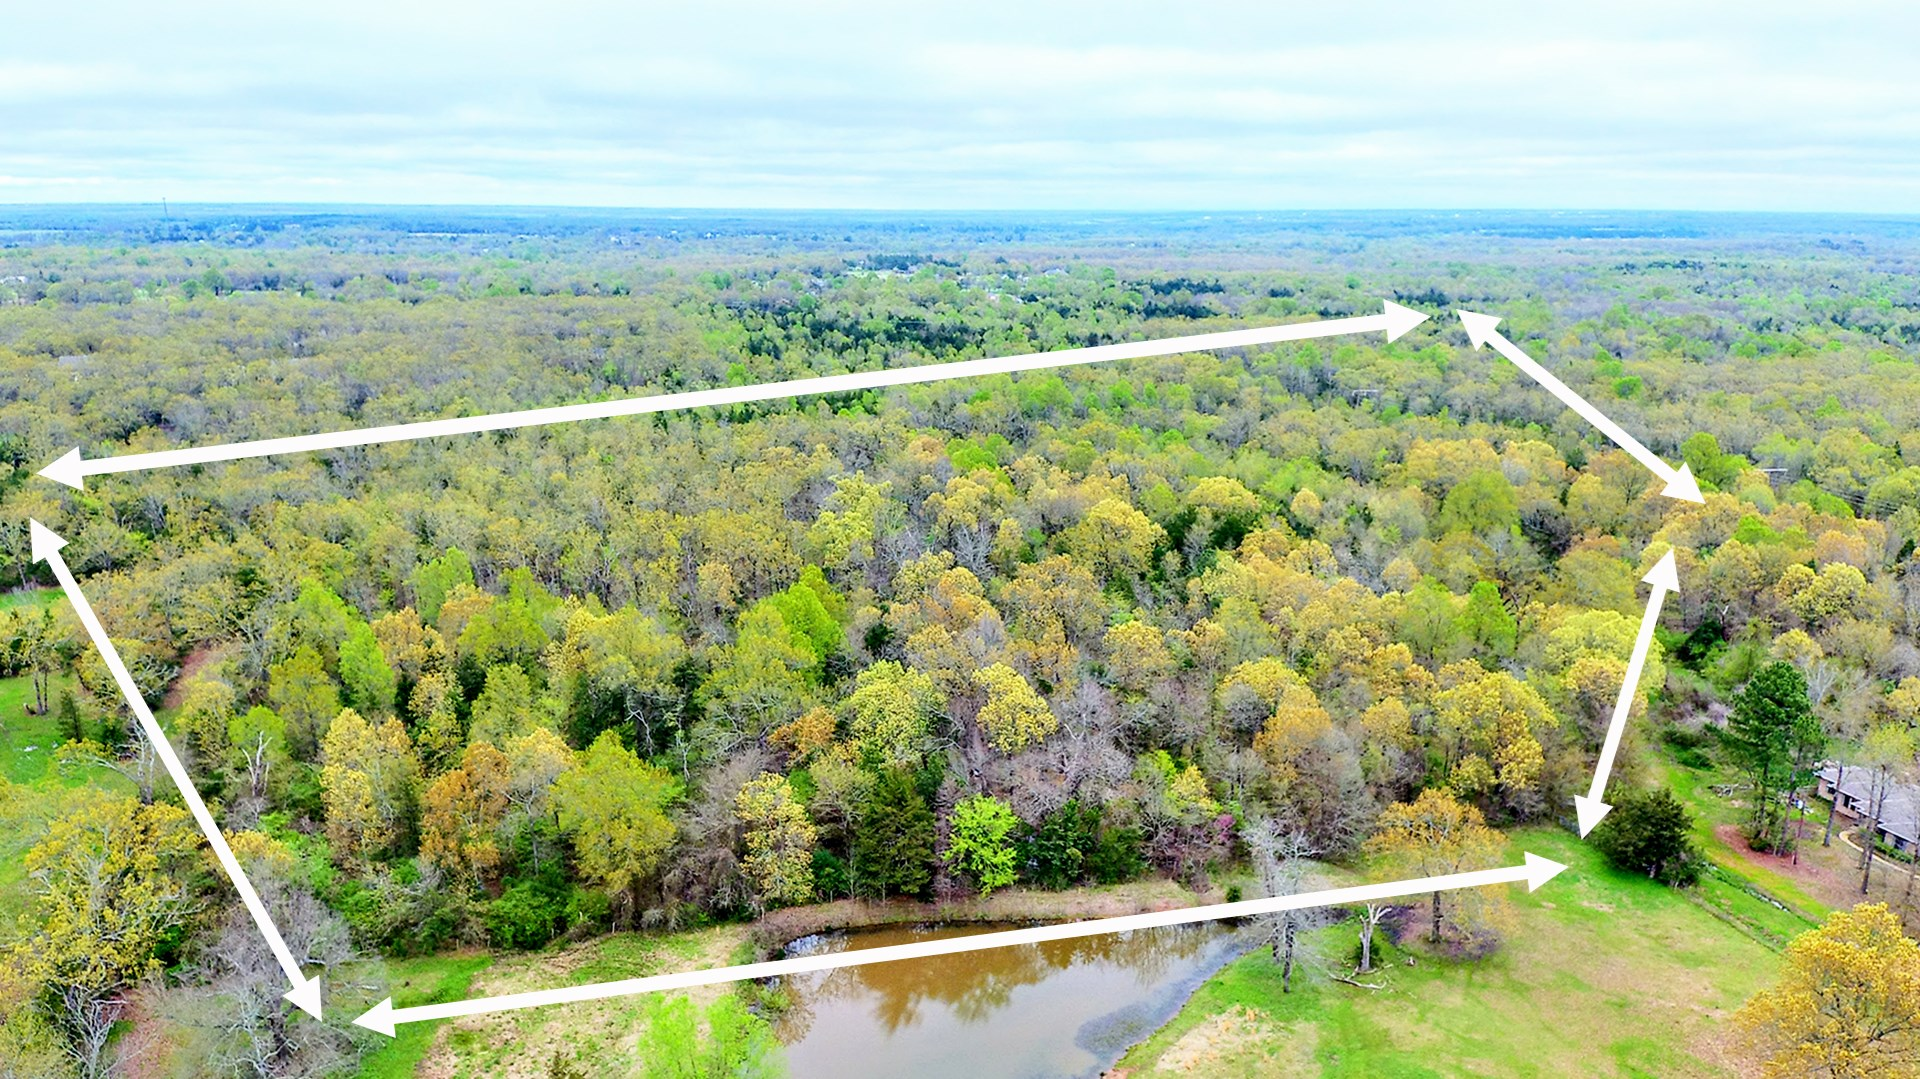 Country Recreational Land For Home-Site For Sale Paris Texas